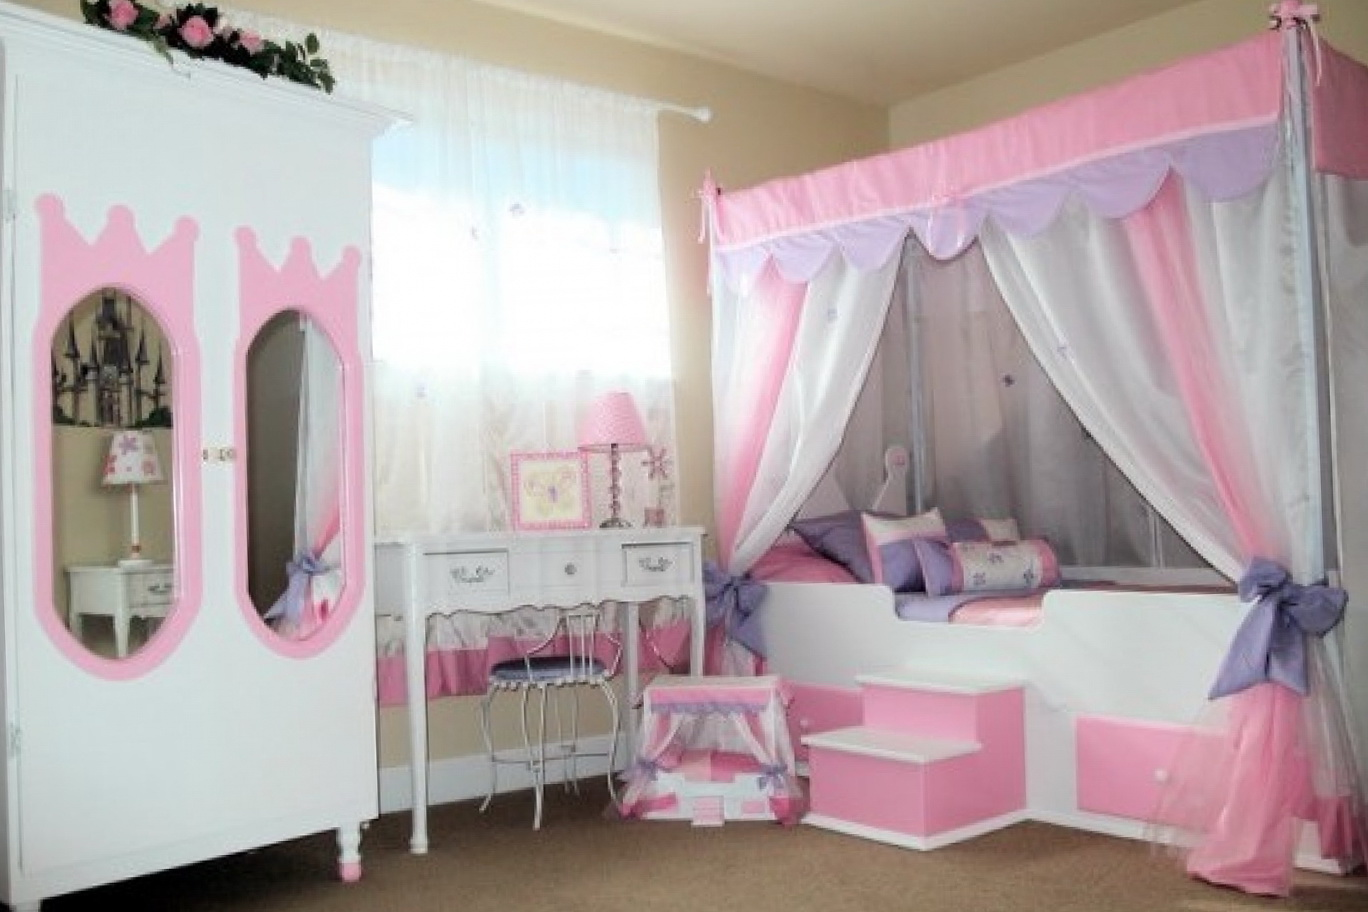 Groovy Girl Bedroom Ideas For 11 Year Olds Beds 21871 Home Download Free Architecture Designs Rallybritishbridgeorg